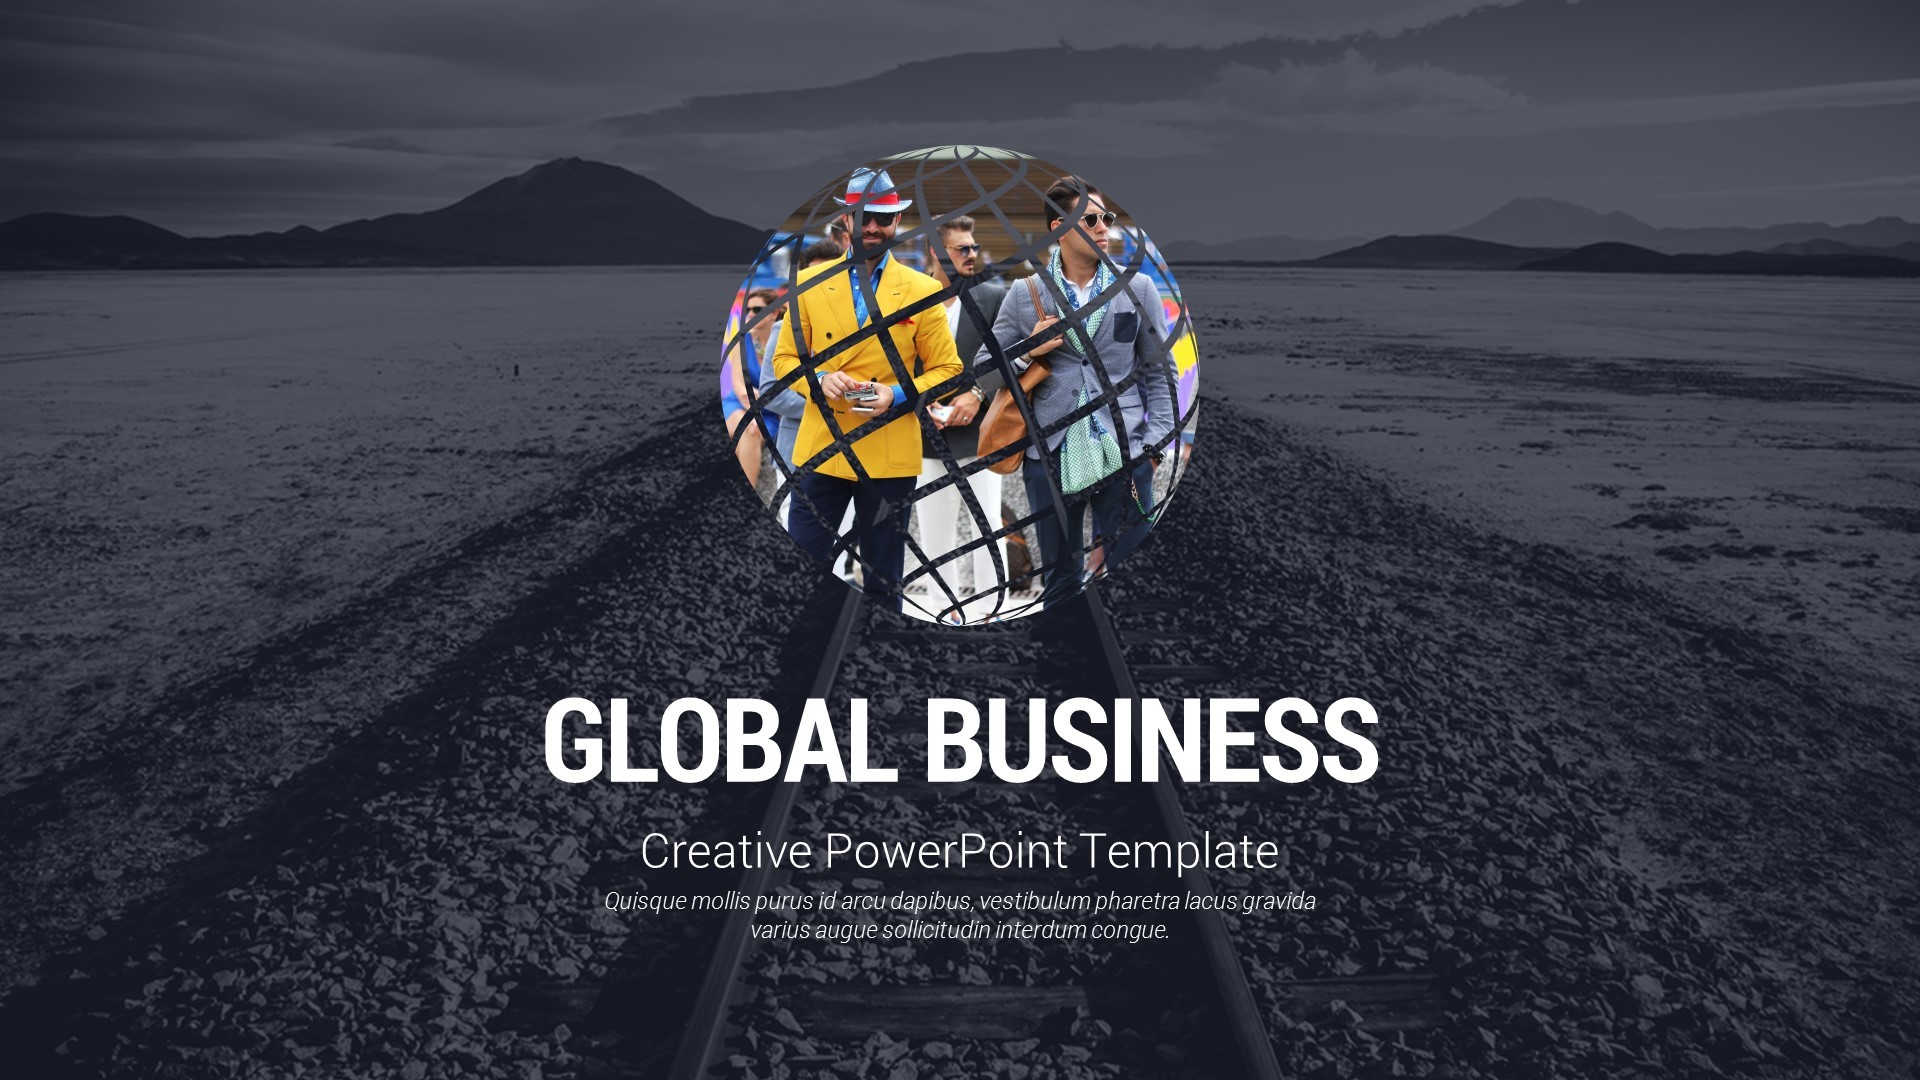 Global business presentation by pptx graphicriver screenshotsglobal business 001 toneelgroepblik Image collections